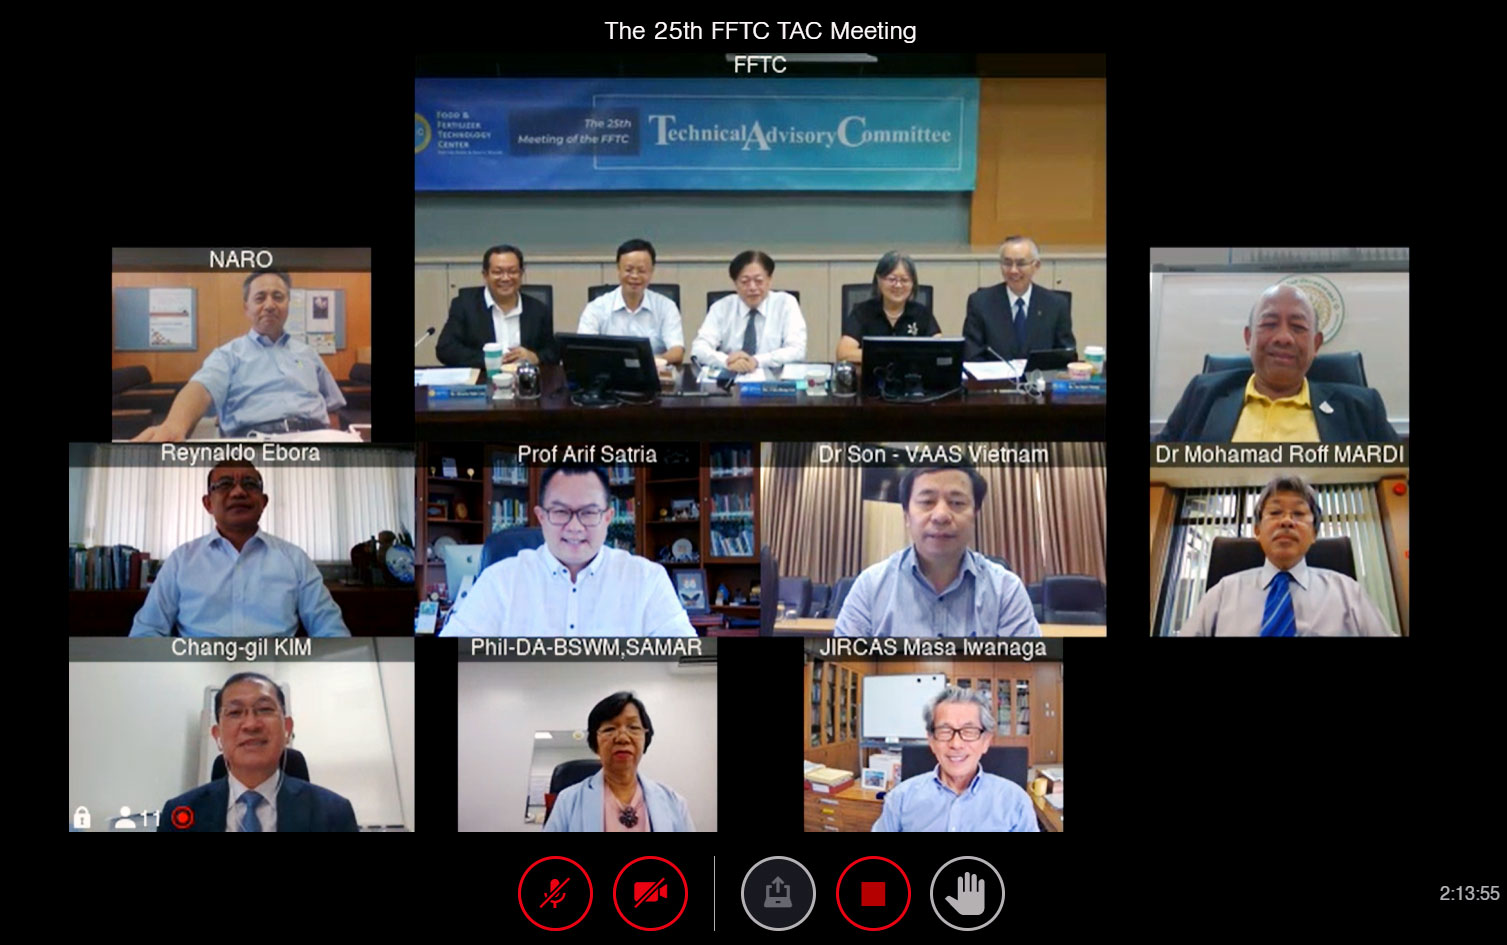 The 25th Meeting of FFTC Technical Advisory Committee (TAC)